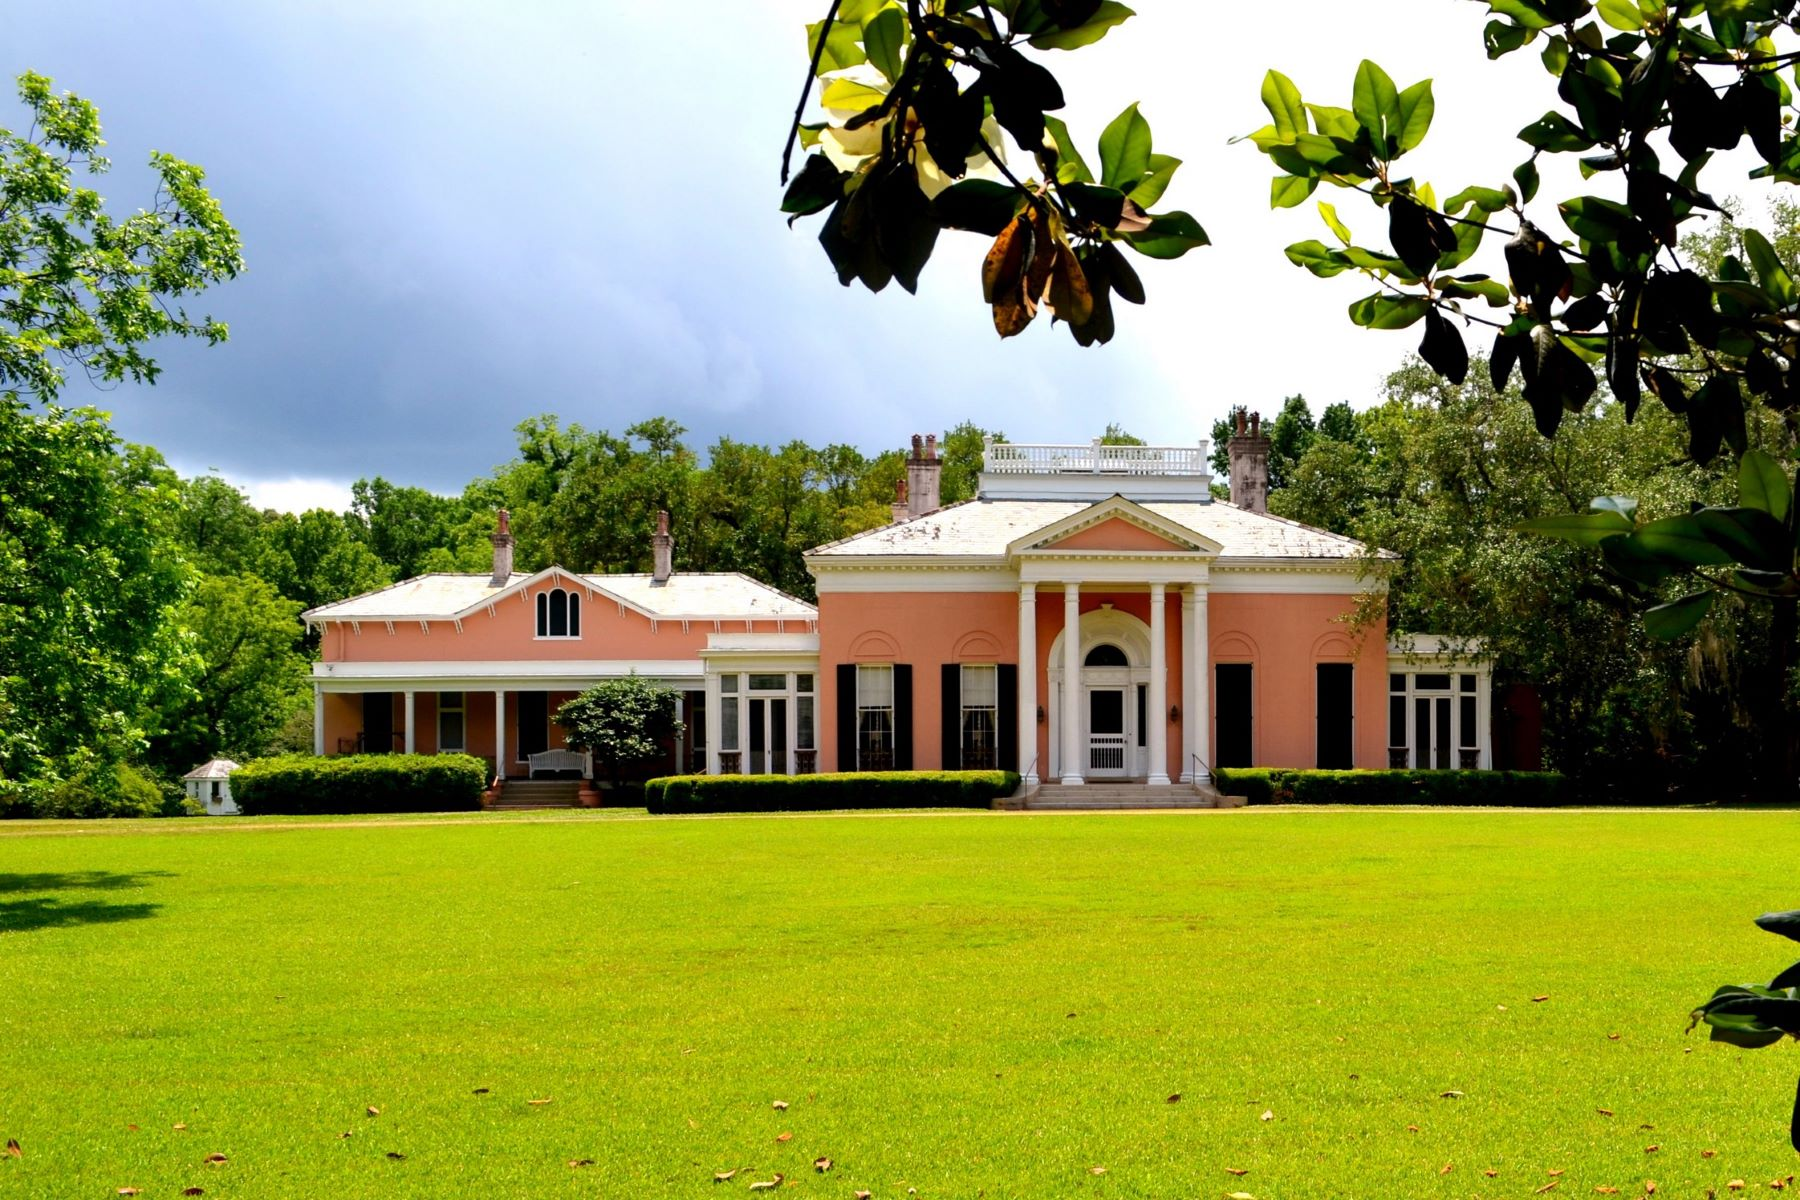 single family homes for Sale at 200 Liberty Rd, Natchez 200 Liberty Rd Natchez, Mississippi 39120 United States